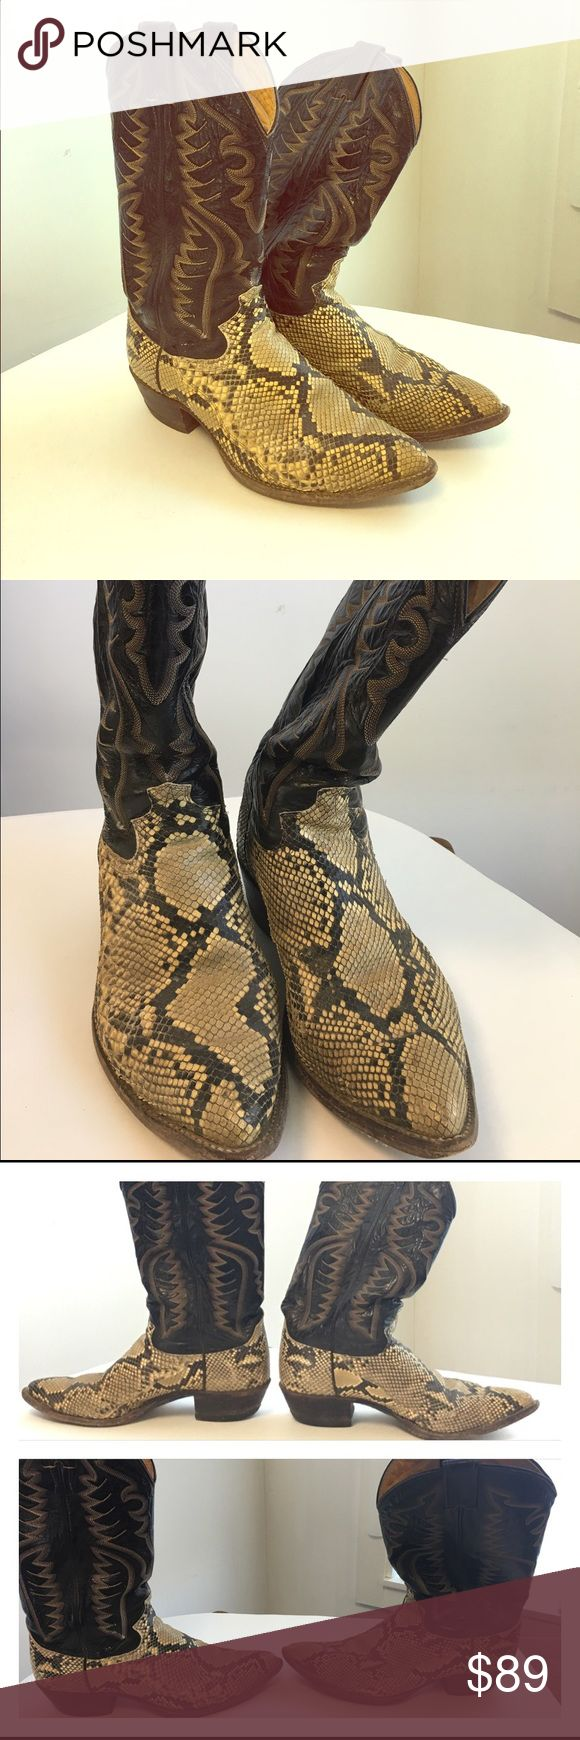 Snakeskin Cowboy boots Vintage Justin snake skin A great pair of worn in men's snakeskin cowboy boots! These are men's size 9.5 D which translates to roughly a women's size 11. These have been worn a lot and show many signs of use, but they still have lots of life left! Please review photos and use them as part of the description as not every flaw can be noted. ❌NO TRADES❌ Justin Boots Shoes Heeled Boots